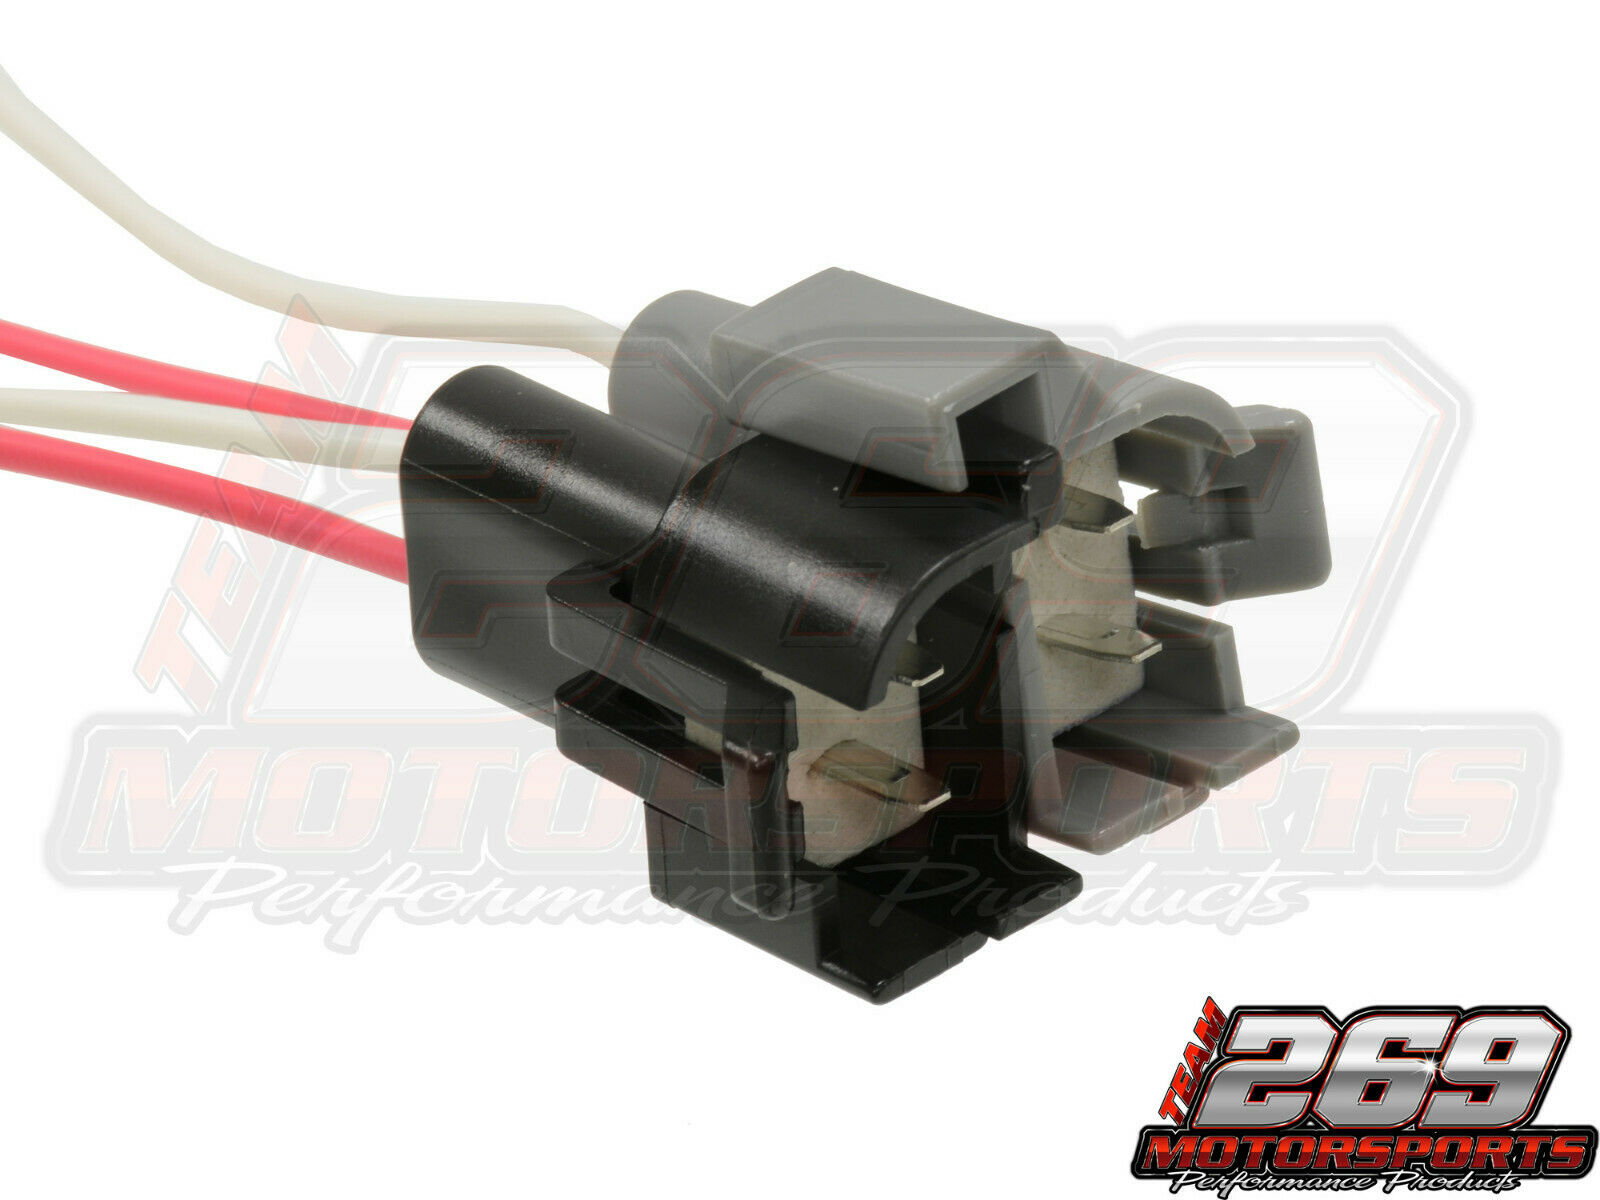 Set Connector Ignition Coil Wire Harness Fits Lt1 Tpi Tbi Gm Camaro Wiring 1 Of 3free Shipping